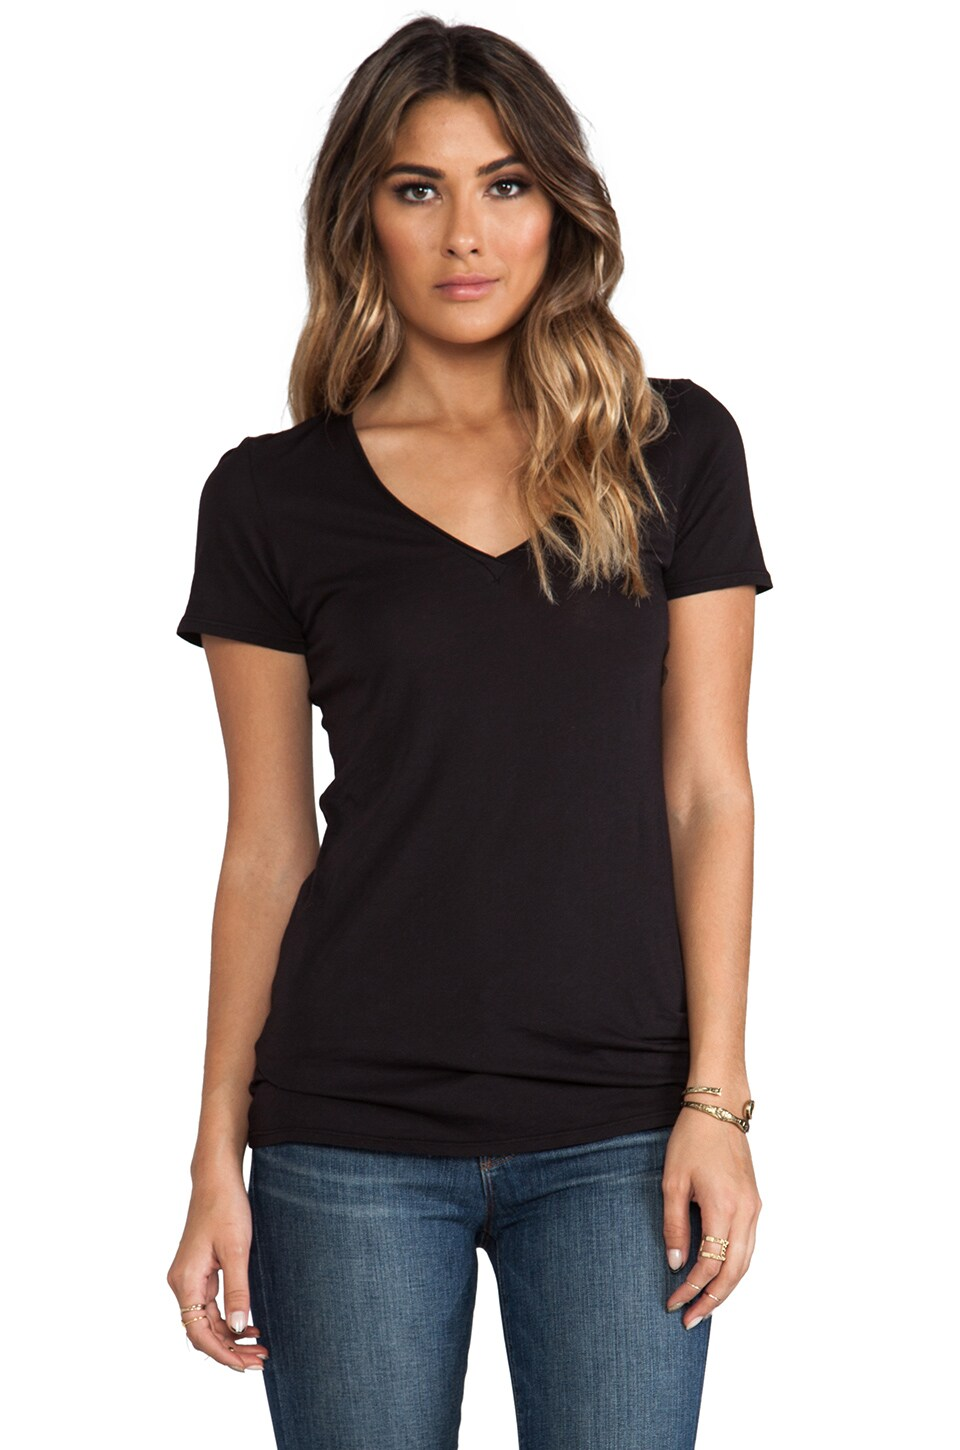 Lanston V Neck Tee in Black